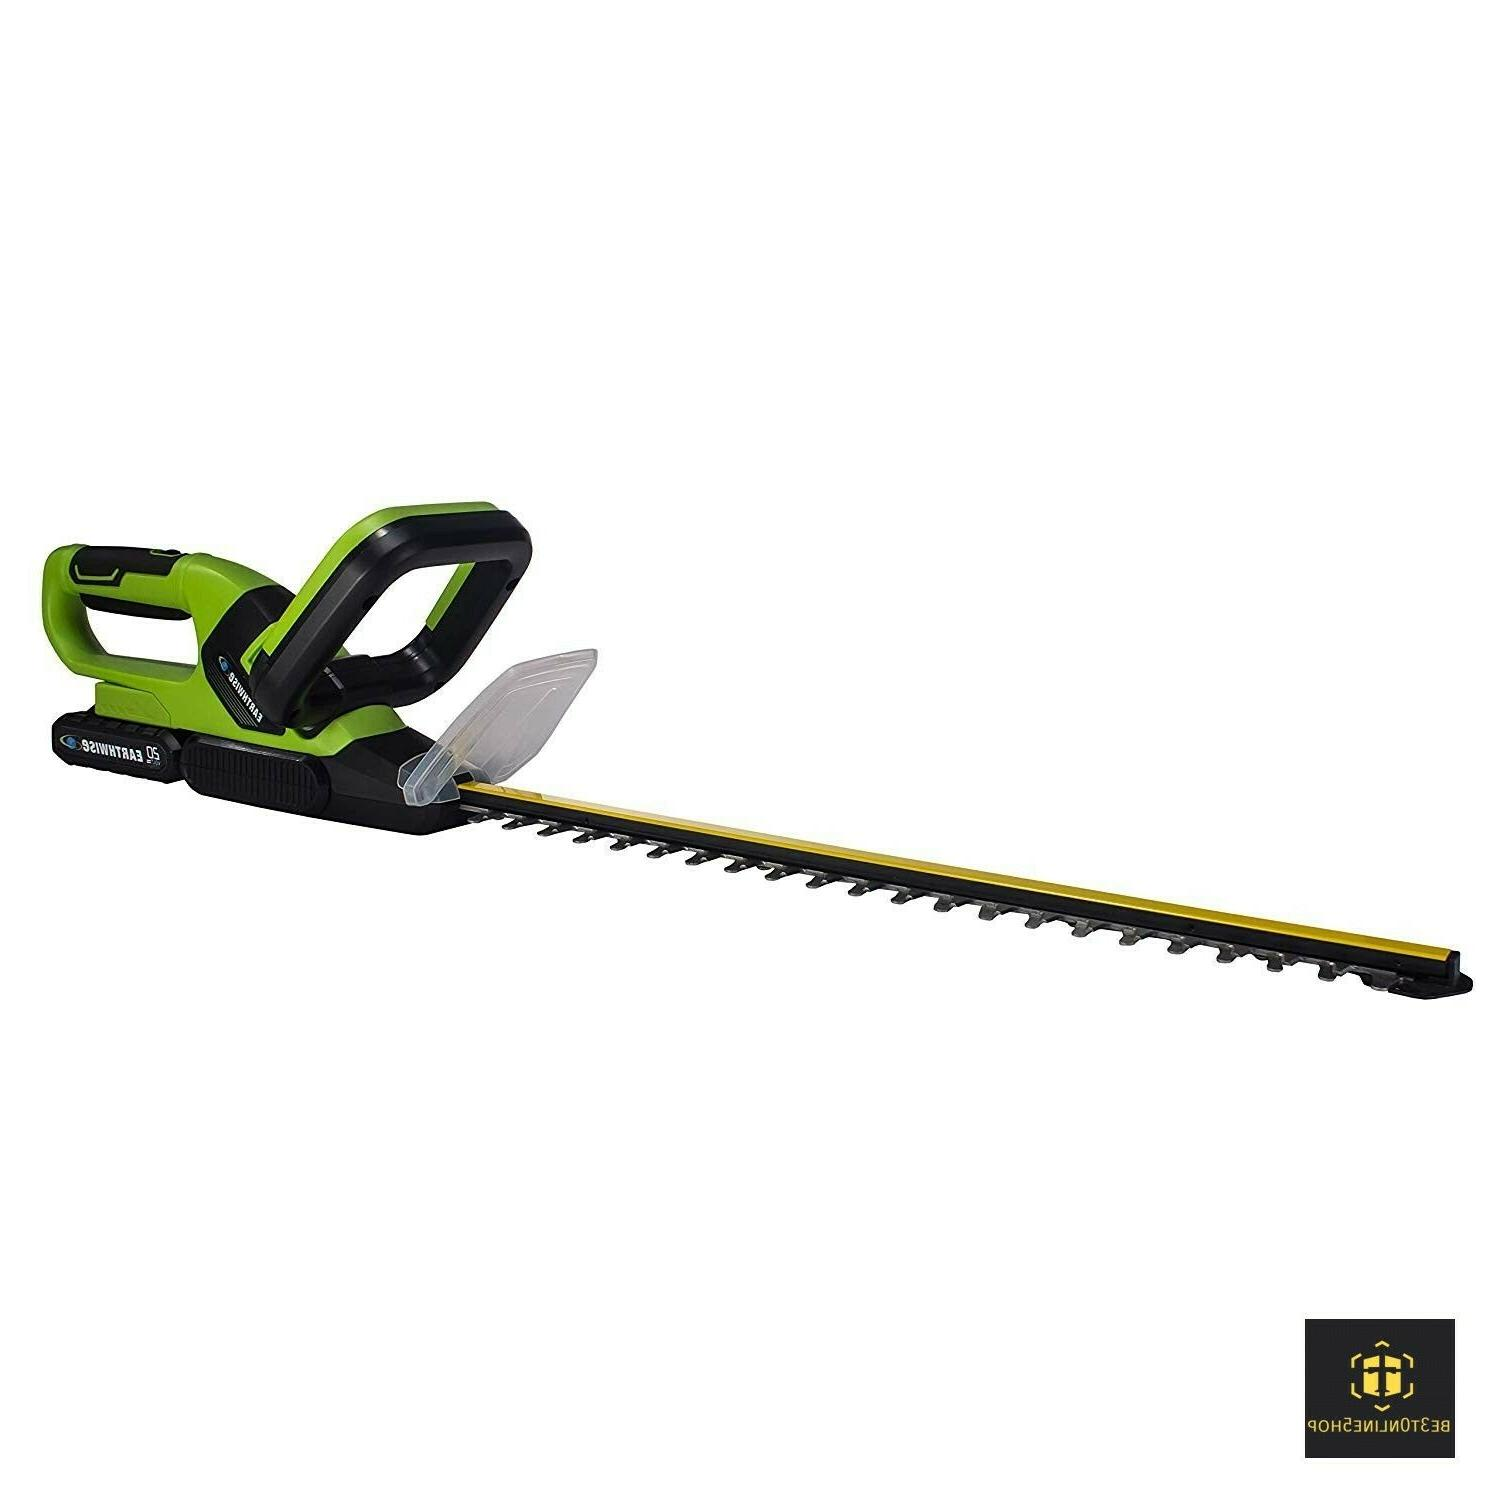 20 dual action battery hedge trimmer 2